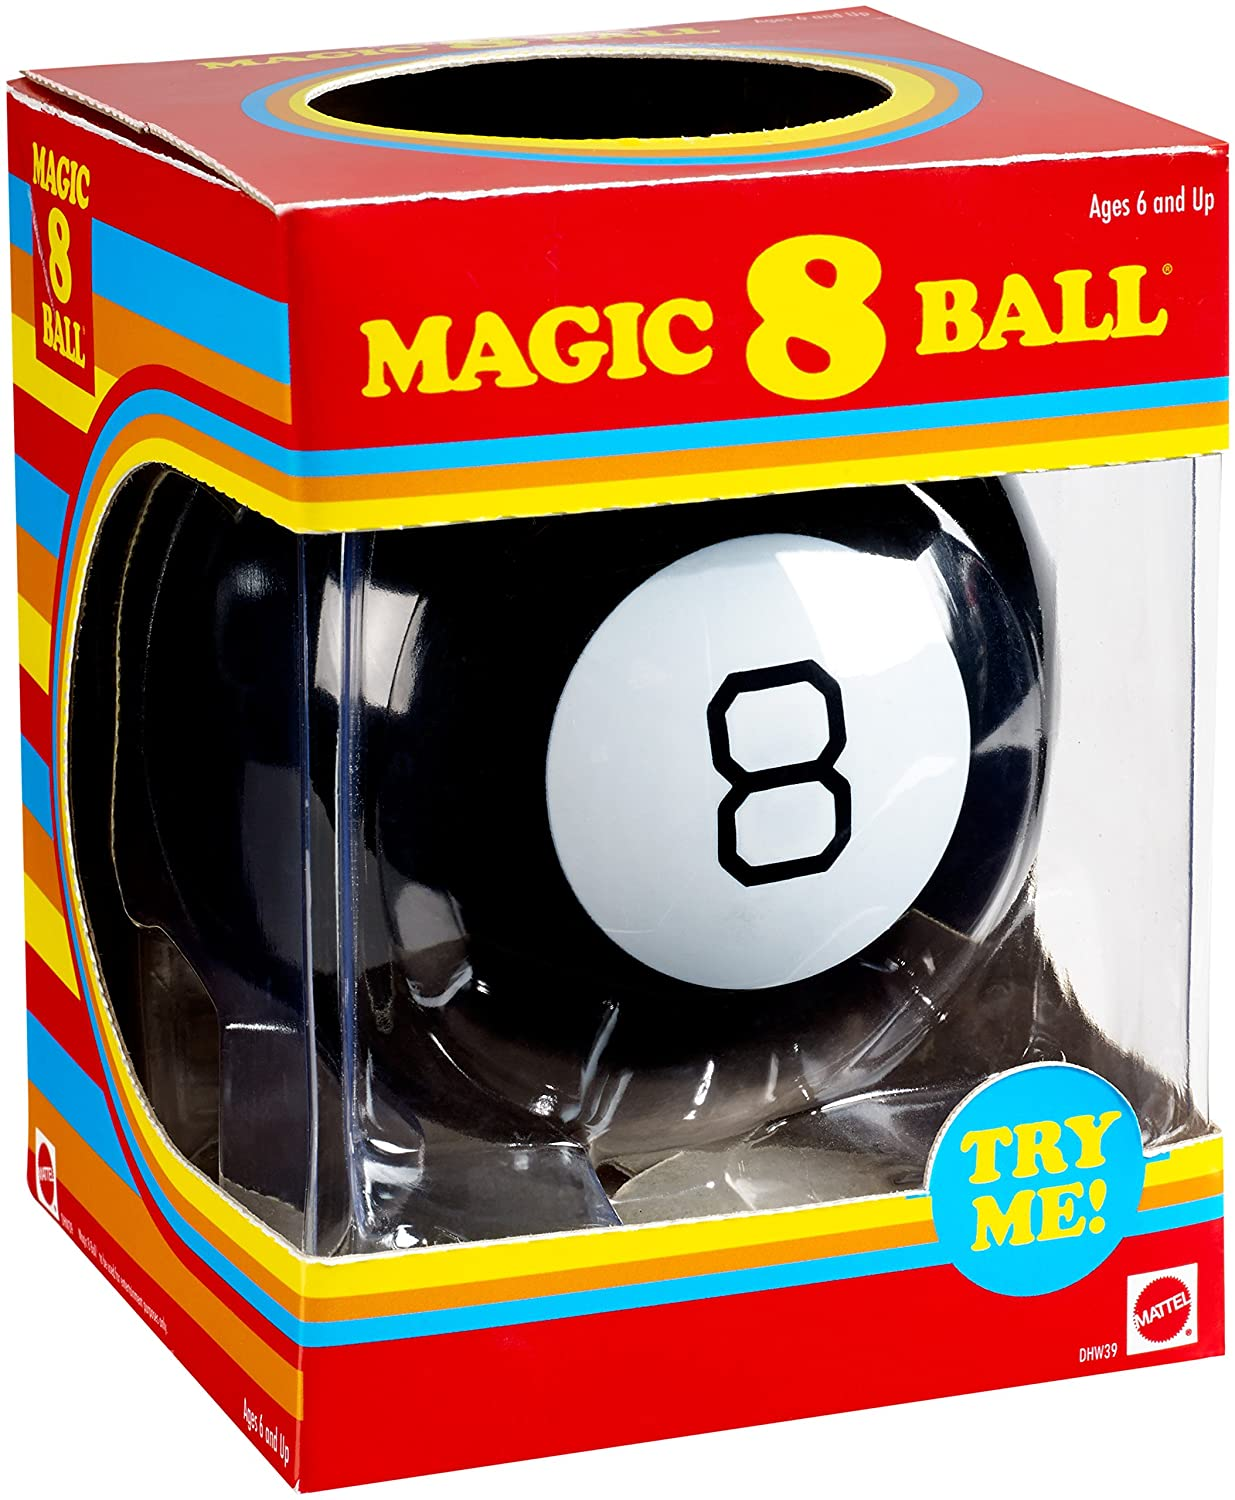 Amazon.com  Mattel Games Magic 8 Ball Retro Edition  Toys   Games 434cb5e5a